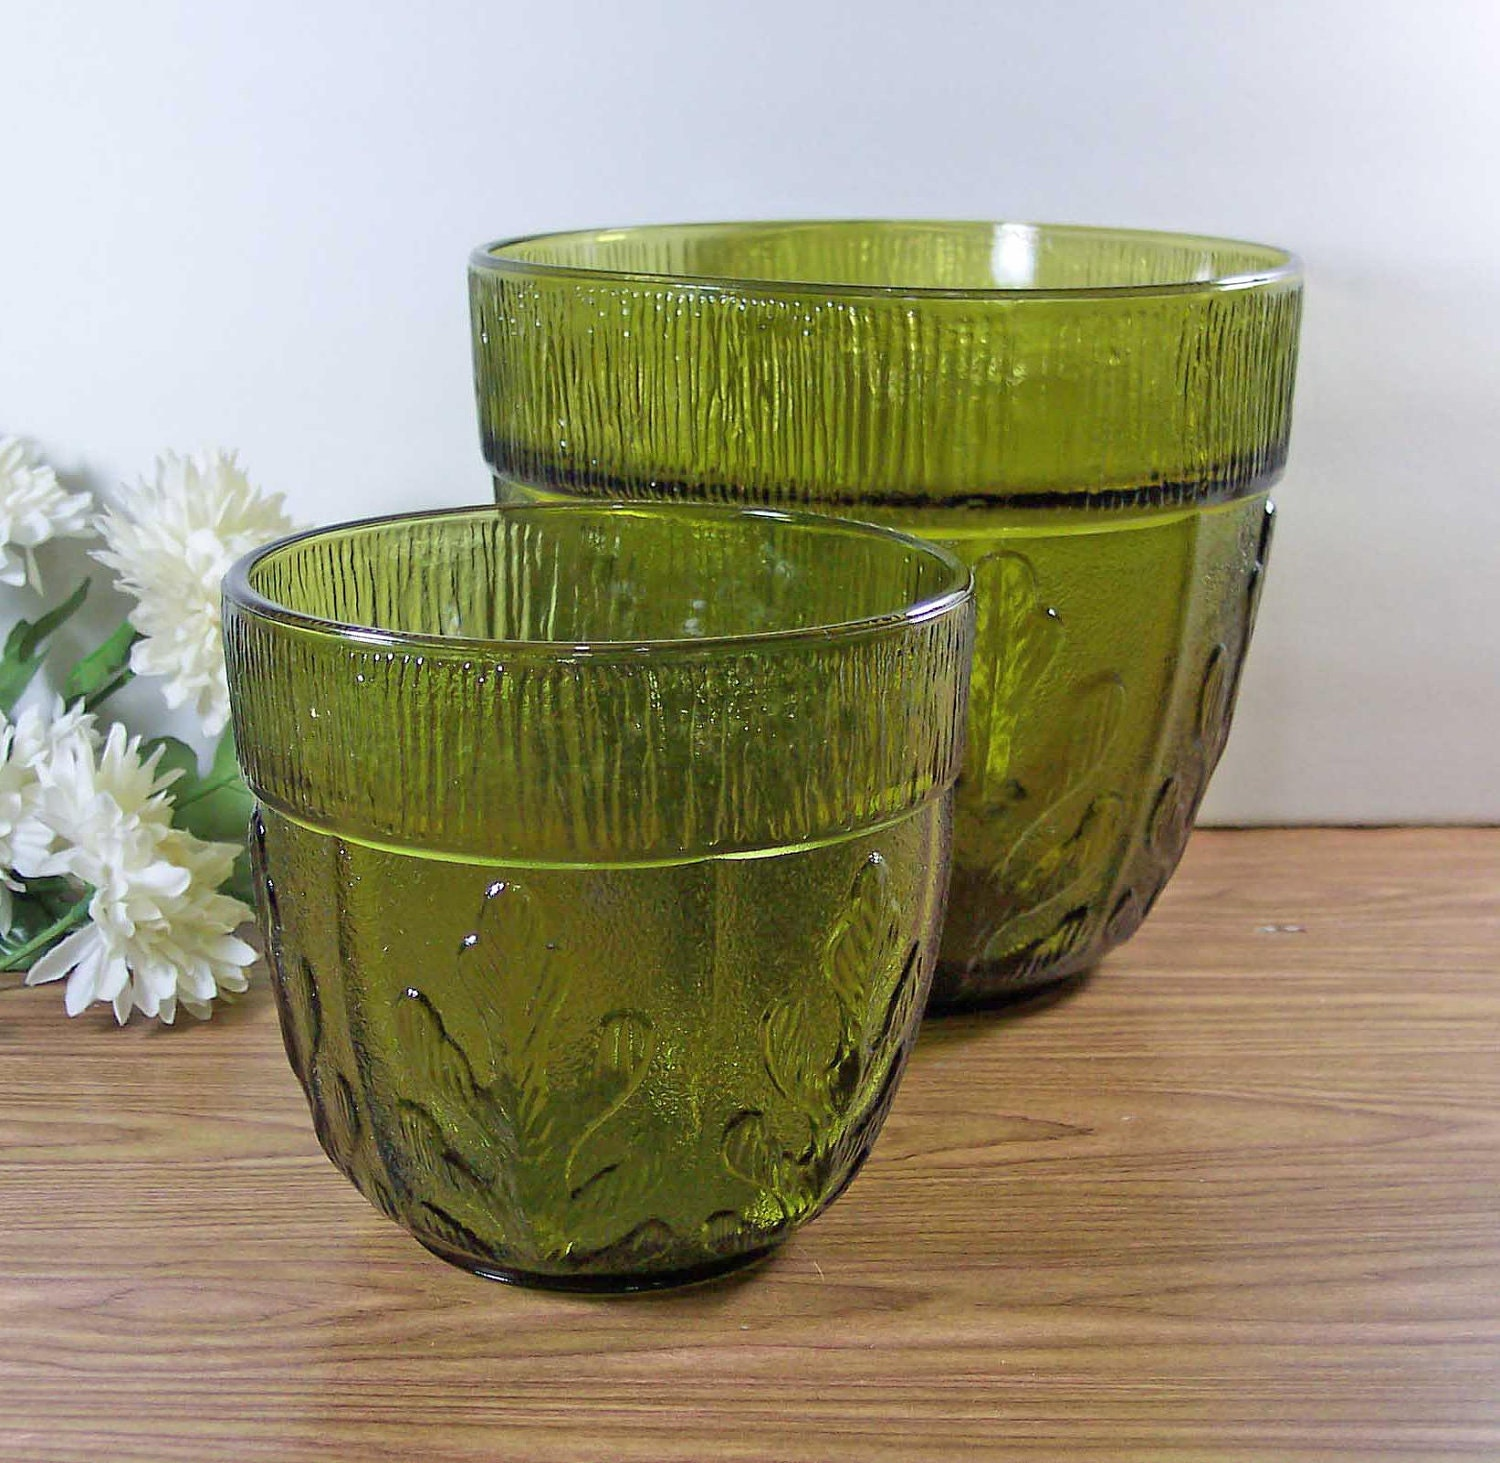 Avocado glass vases planters centerpieces bowls fern